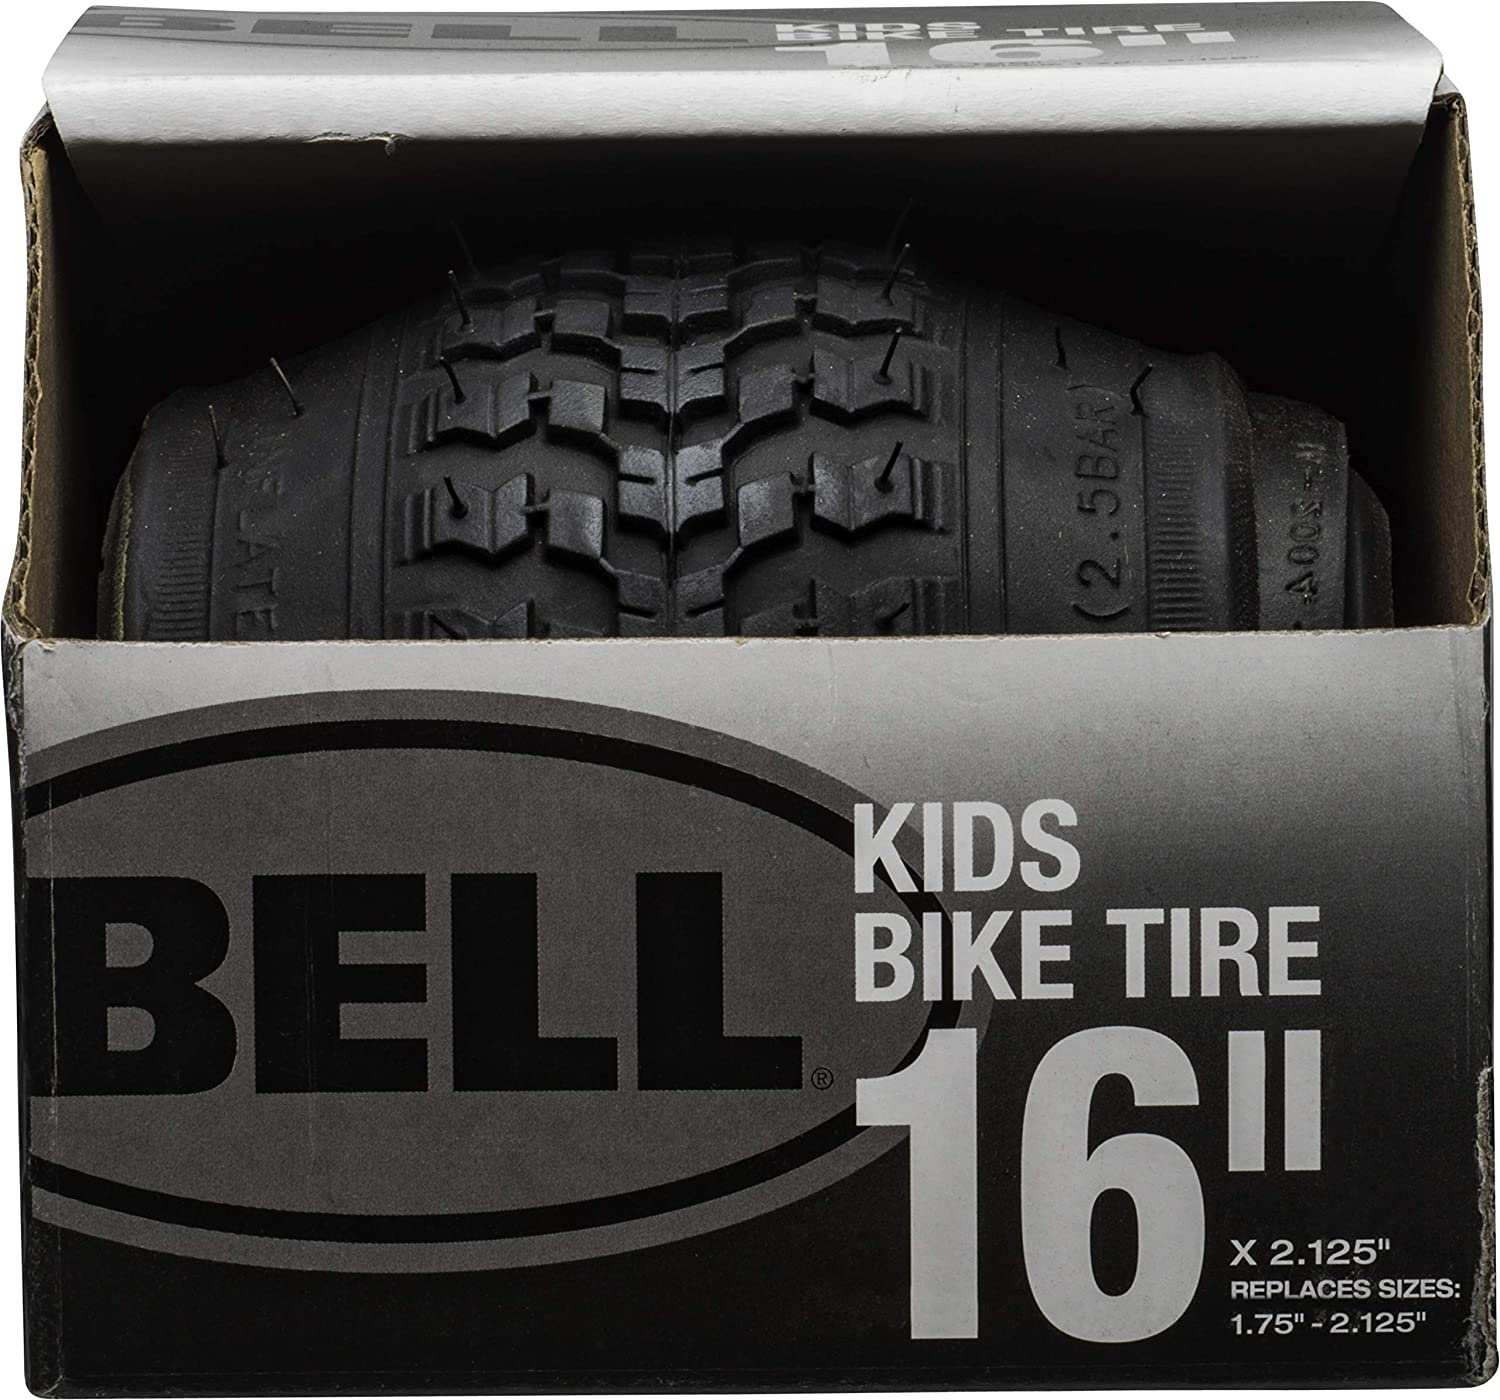 """Details about  /Bell Kids Bike Tires 16""""x 2.125"""" Replaces 1.75""""-2.125"""" White Set of 2 New"""